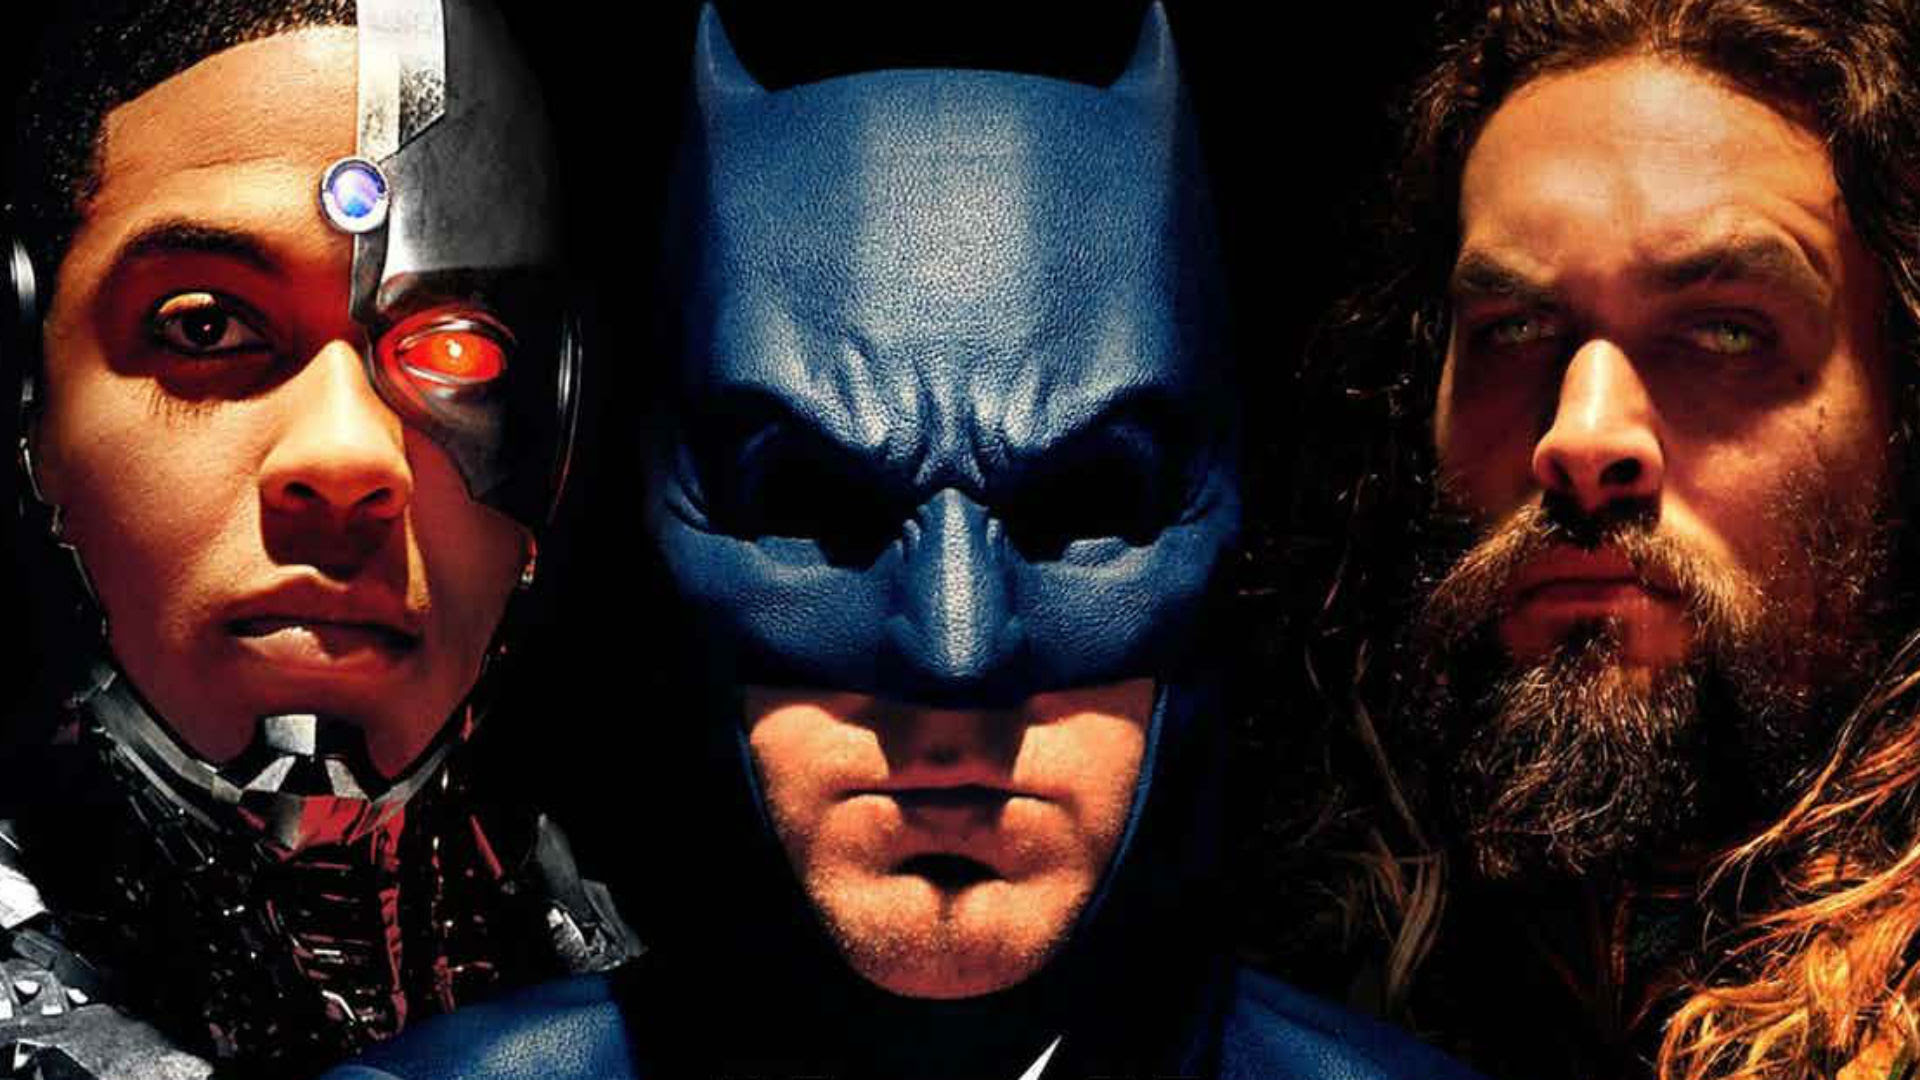 Justice League actually looks pretty good in its SDCC trailer screenshot